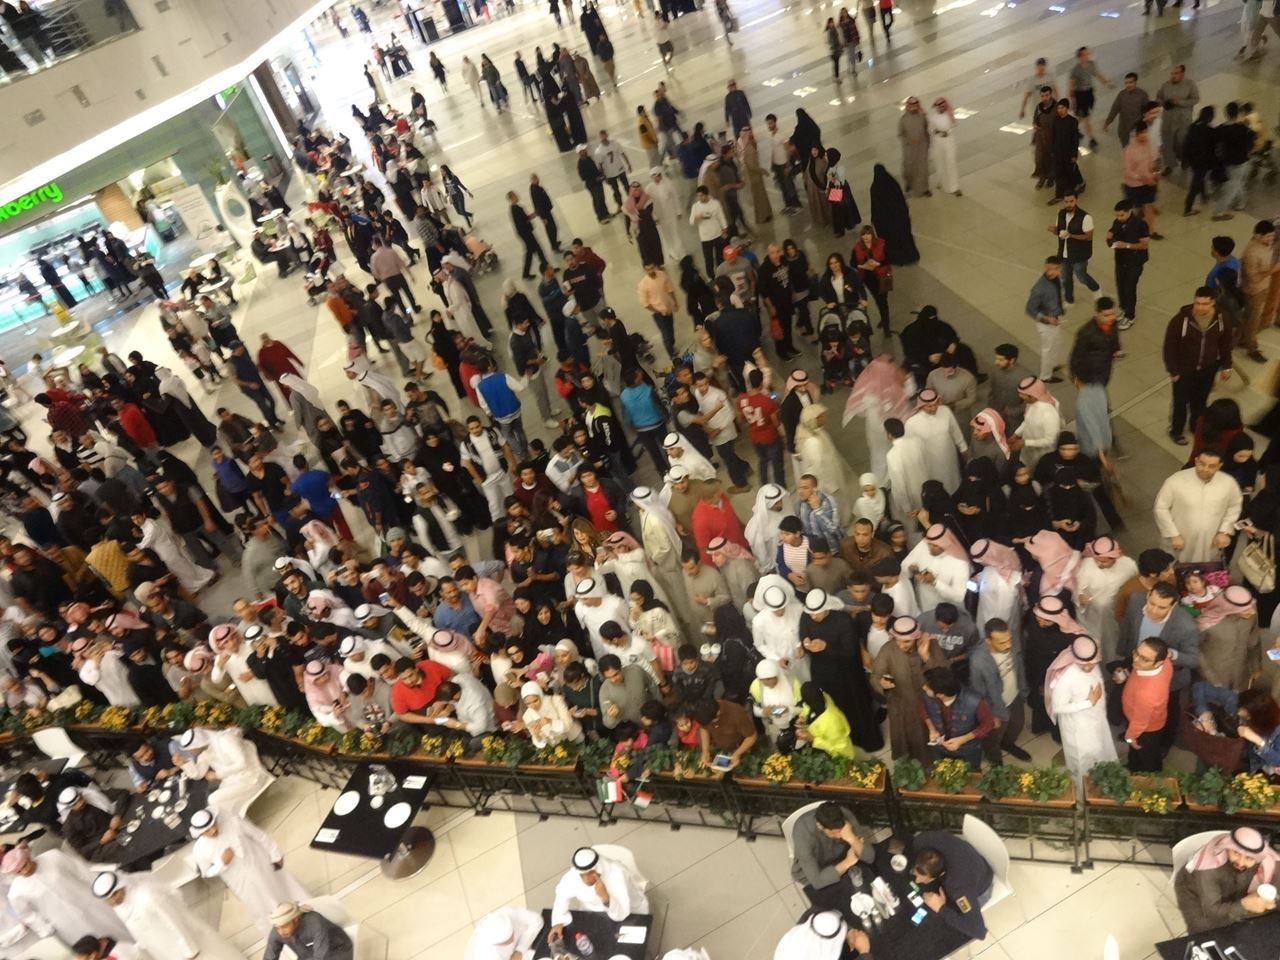 Video ... Prince Fazza's visit to the Avenues causes a huge crowd